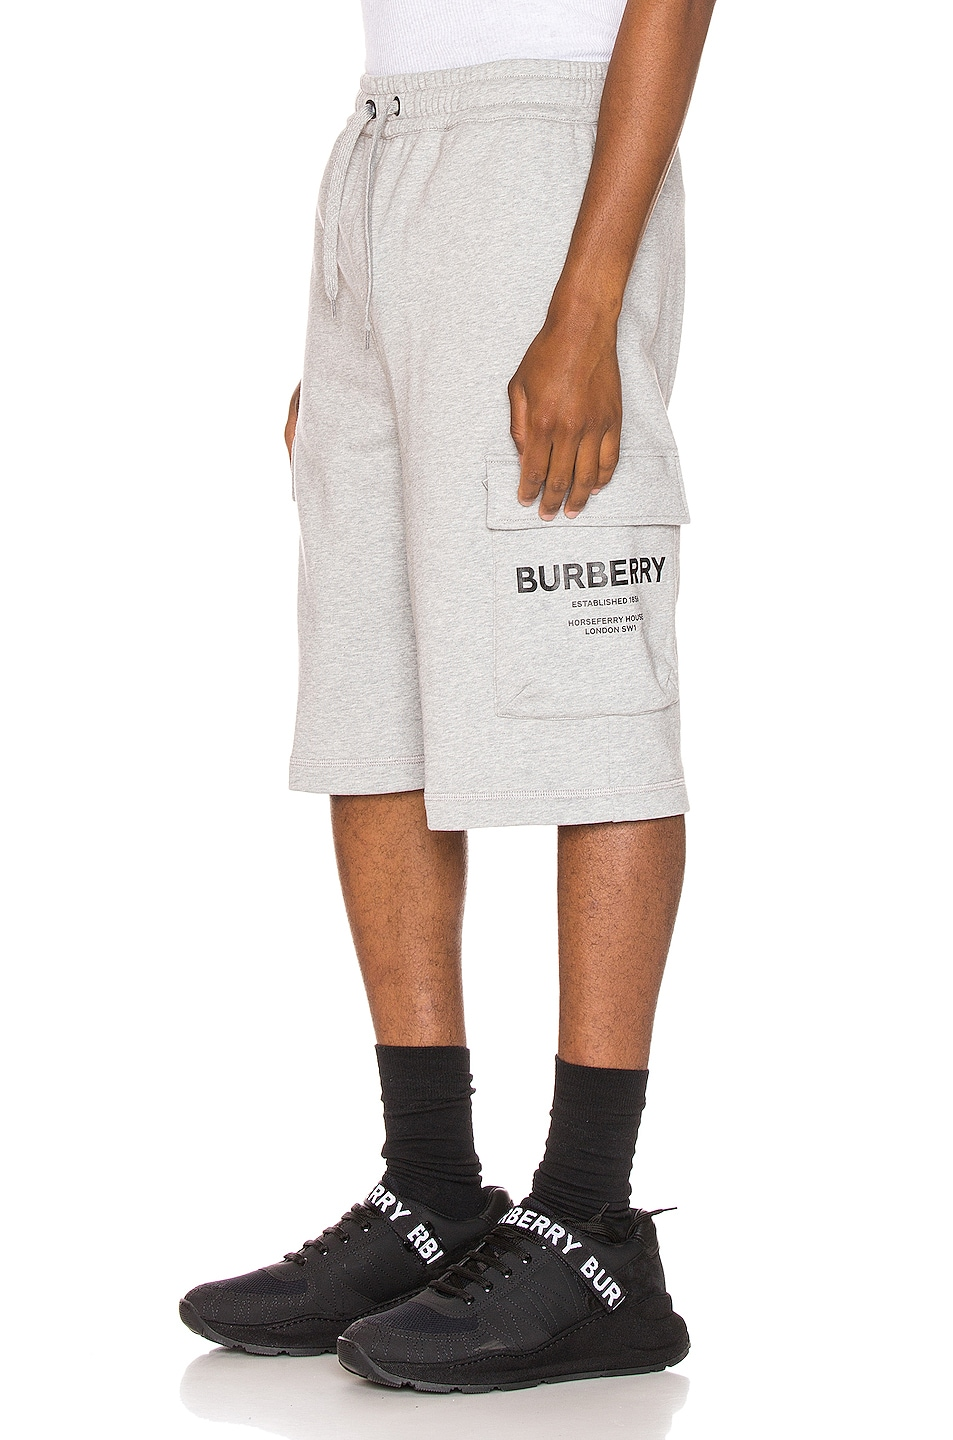 Image 1 of Burberry Ailford Track Shorts in Pale Grey Melange